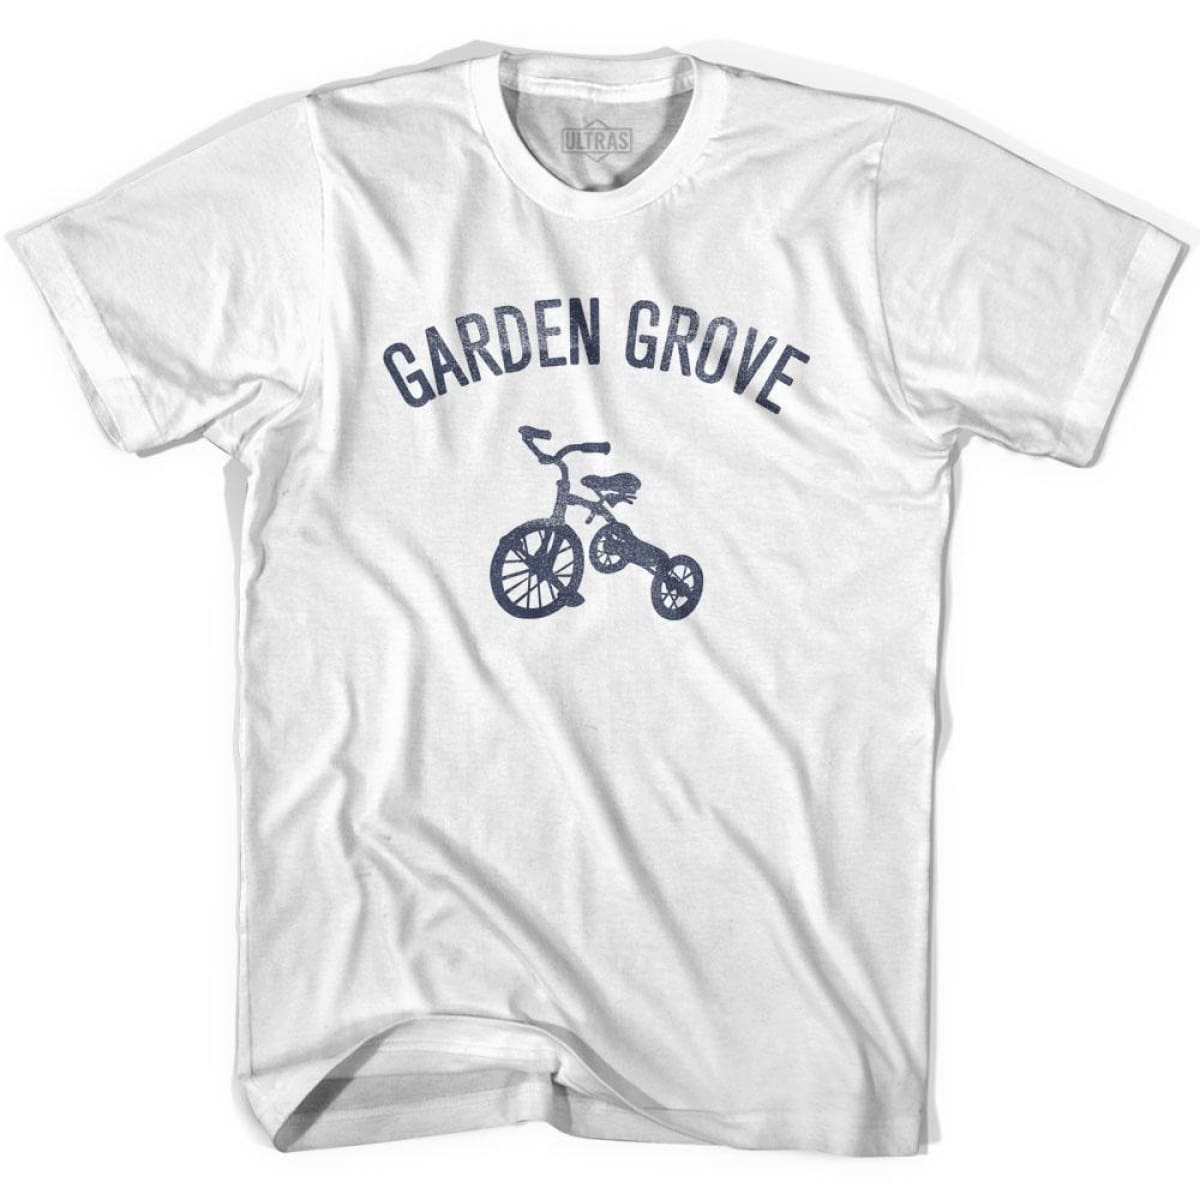 Garden Grove City Tricycle Womens Cotton T-shirt - Tricycle City